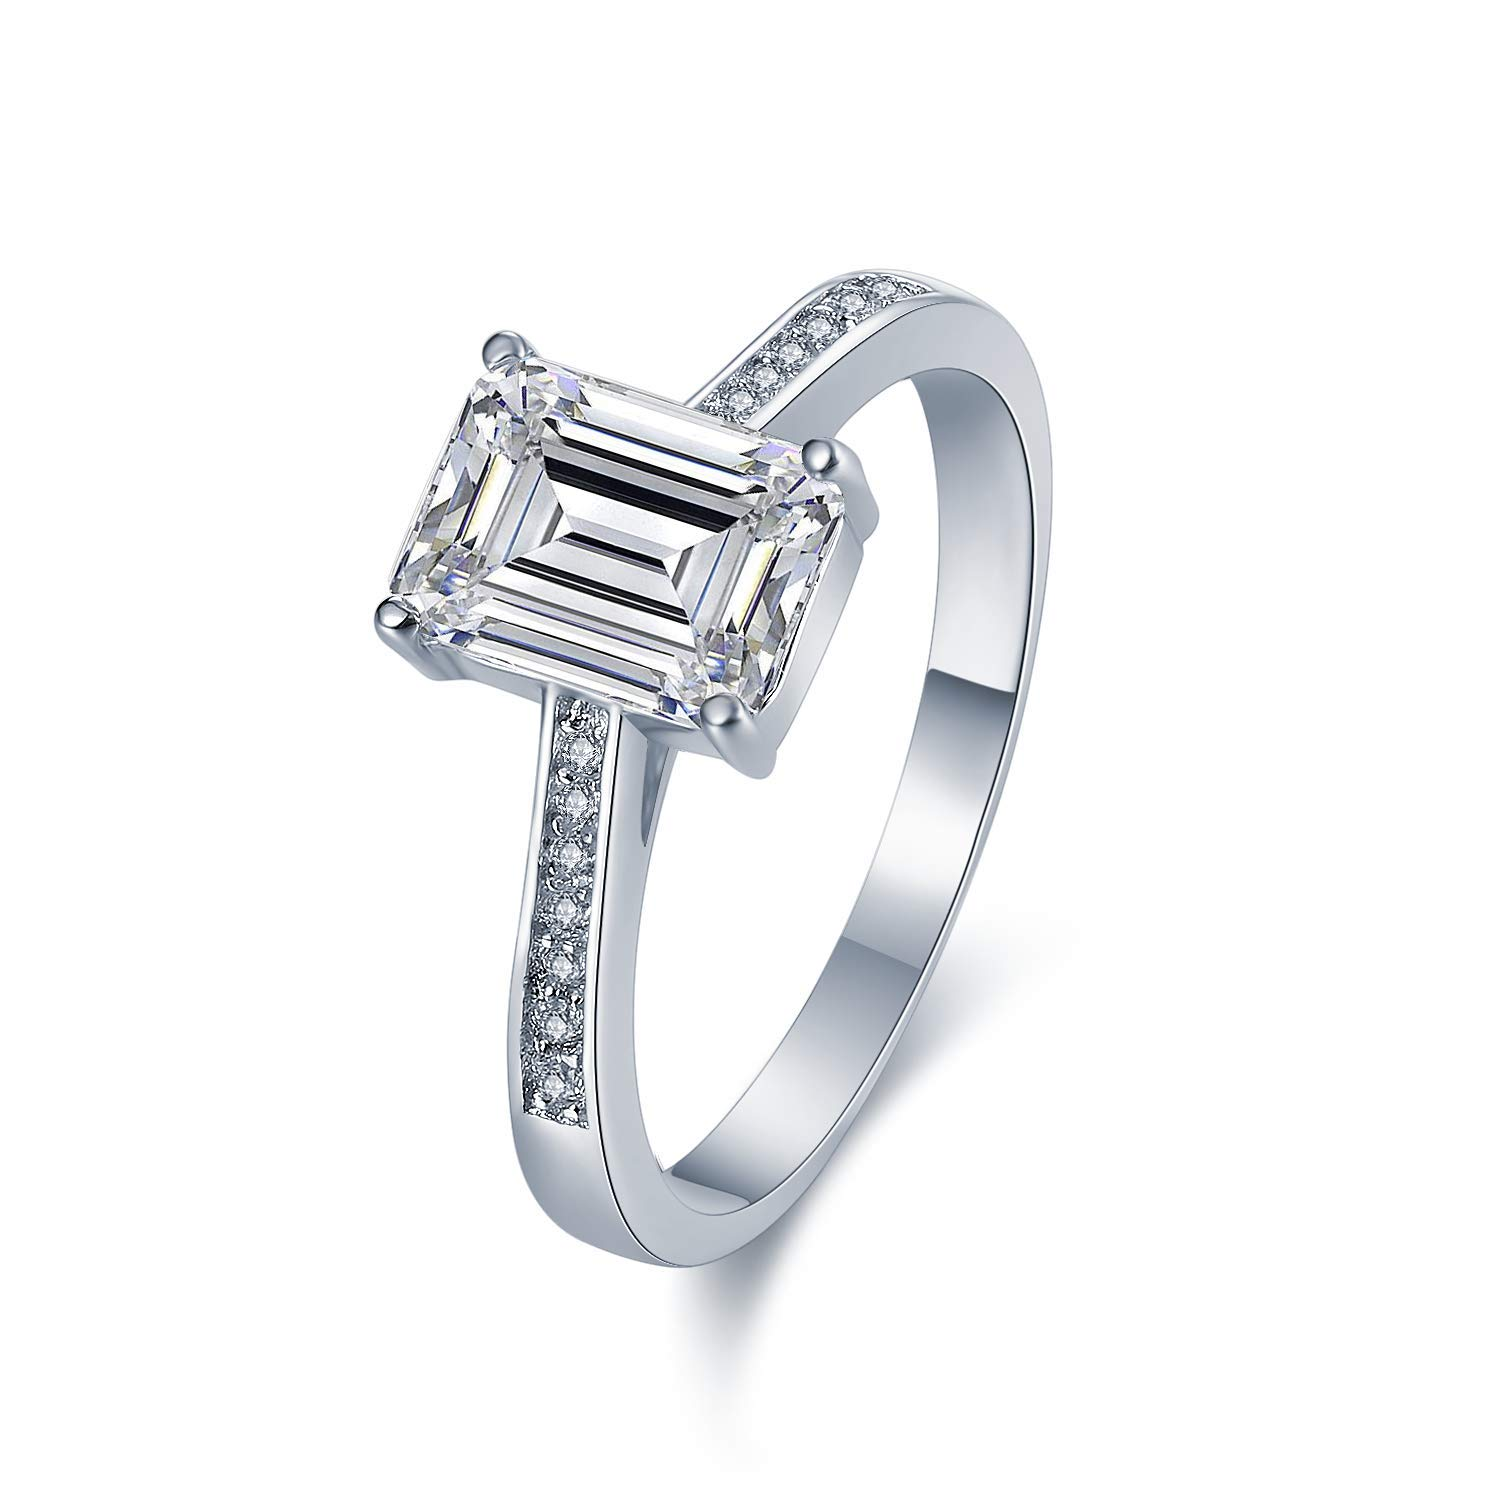 Sreema London Celeb Style Micro-Pave Set 925 Sterling Silver Ring. Vintage Look Emerald Cut Wedding Engagement Anniversary Band Ring with AAAAA Cubic Zirconia (7.5)